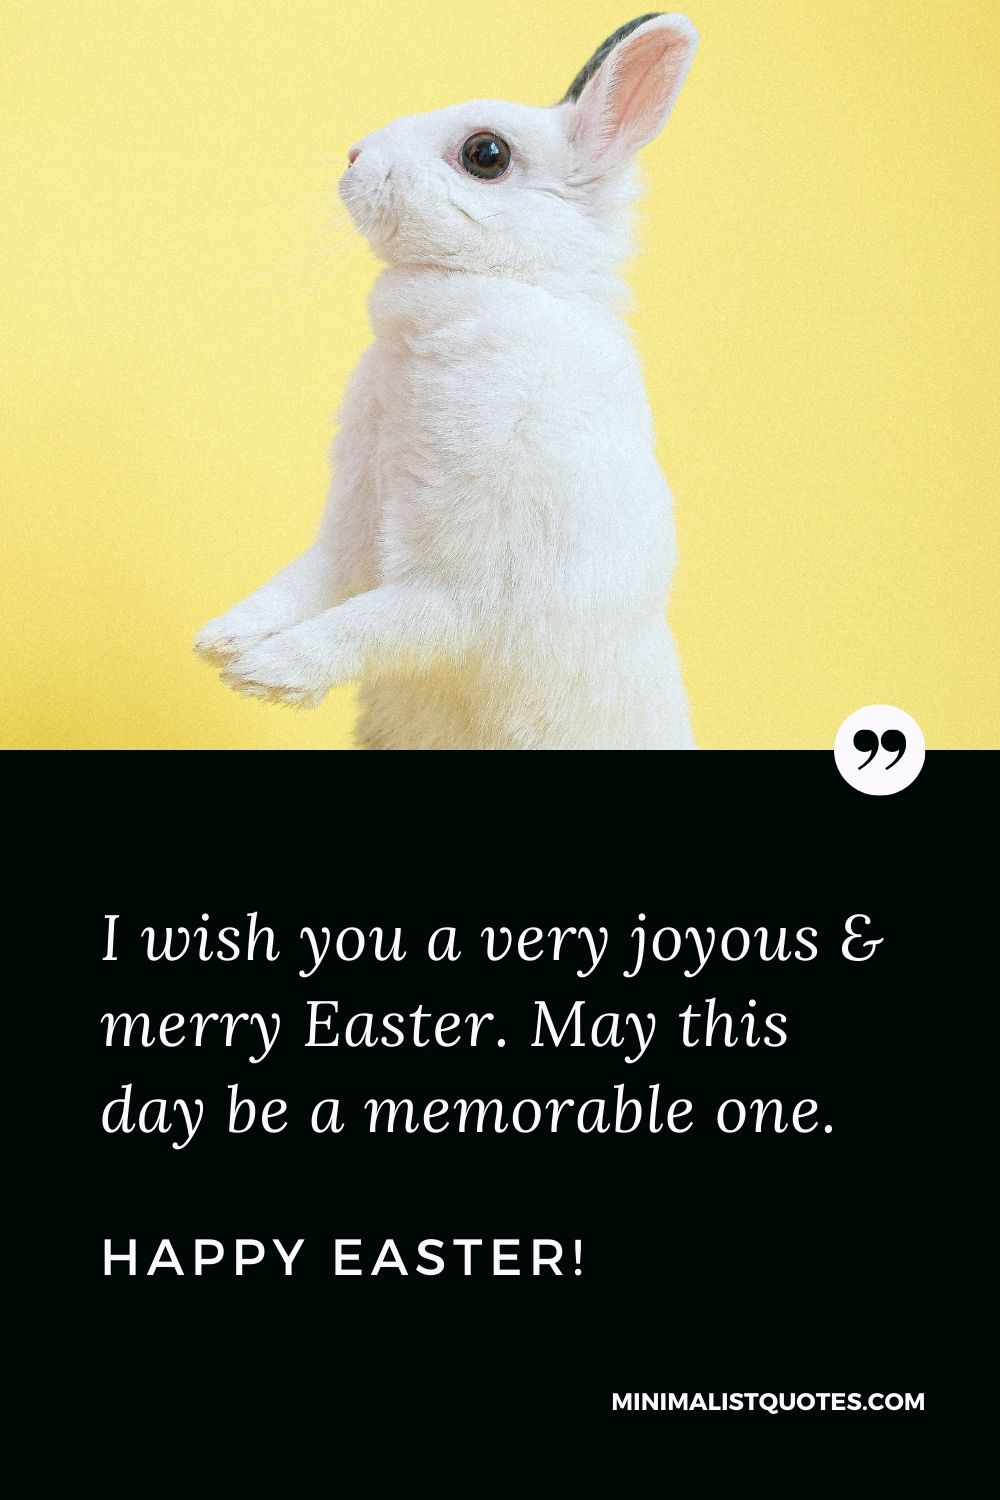 Easter Quote, Message & Wish With Image: I wish you a very joyous & merry Easter. May this day be a memorable one. Happy Easter!